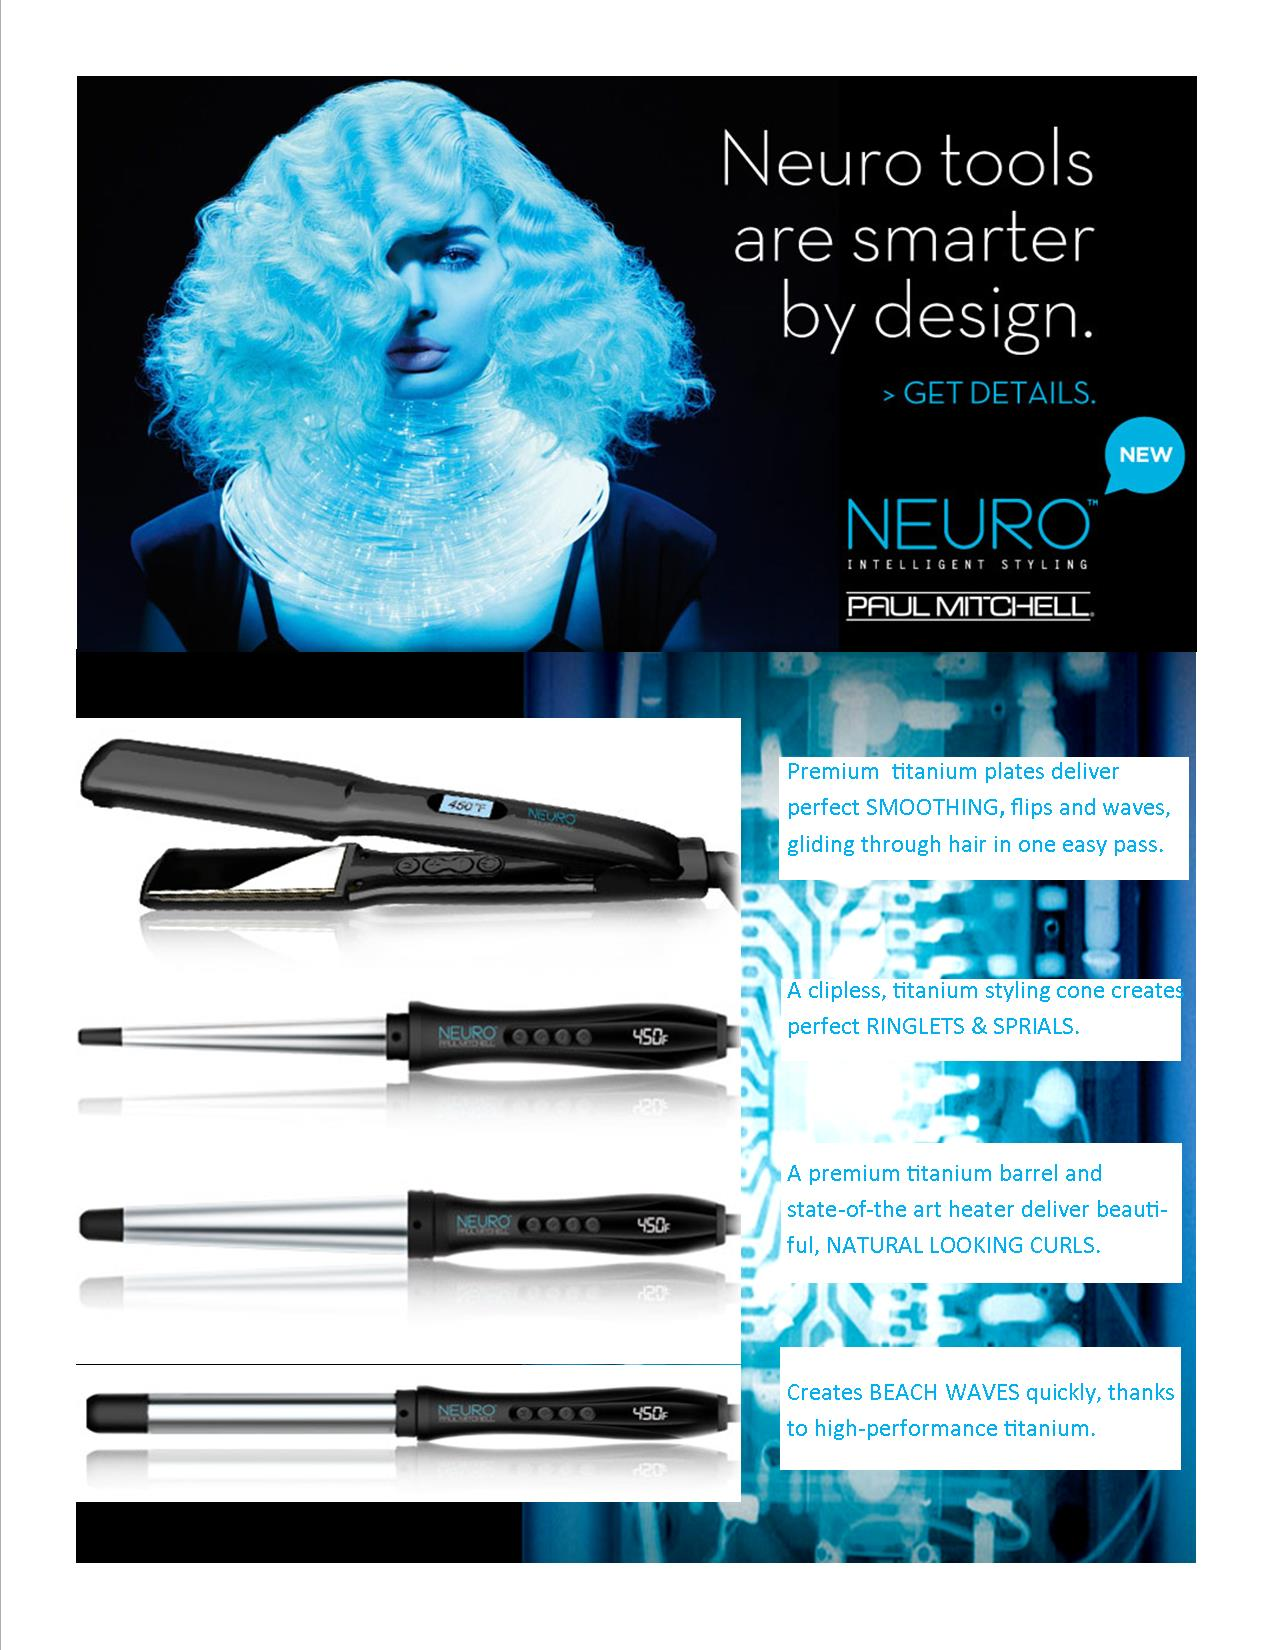 Neuro Styling Tools by Paul Mitchell at the Colorist Bar & Salo in Cleveland, OH